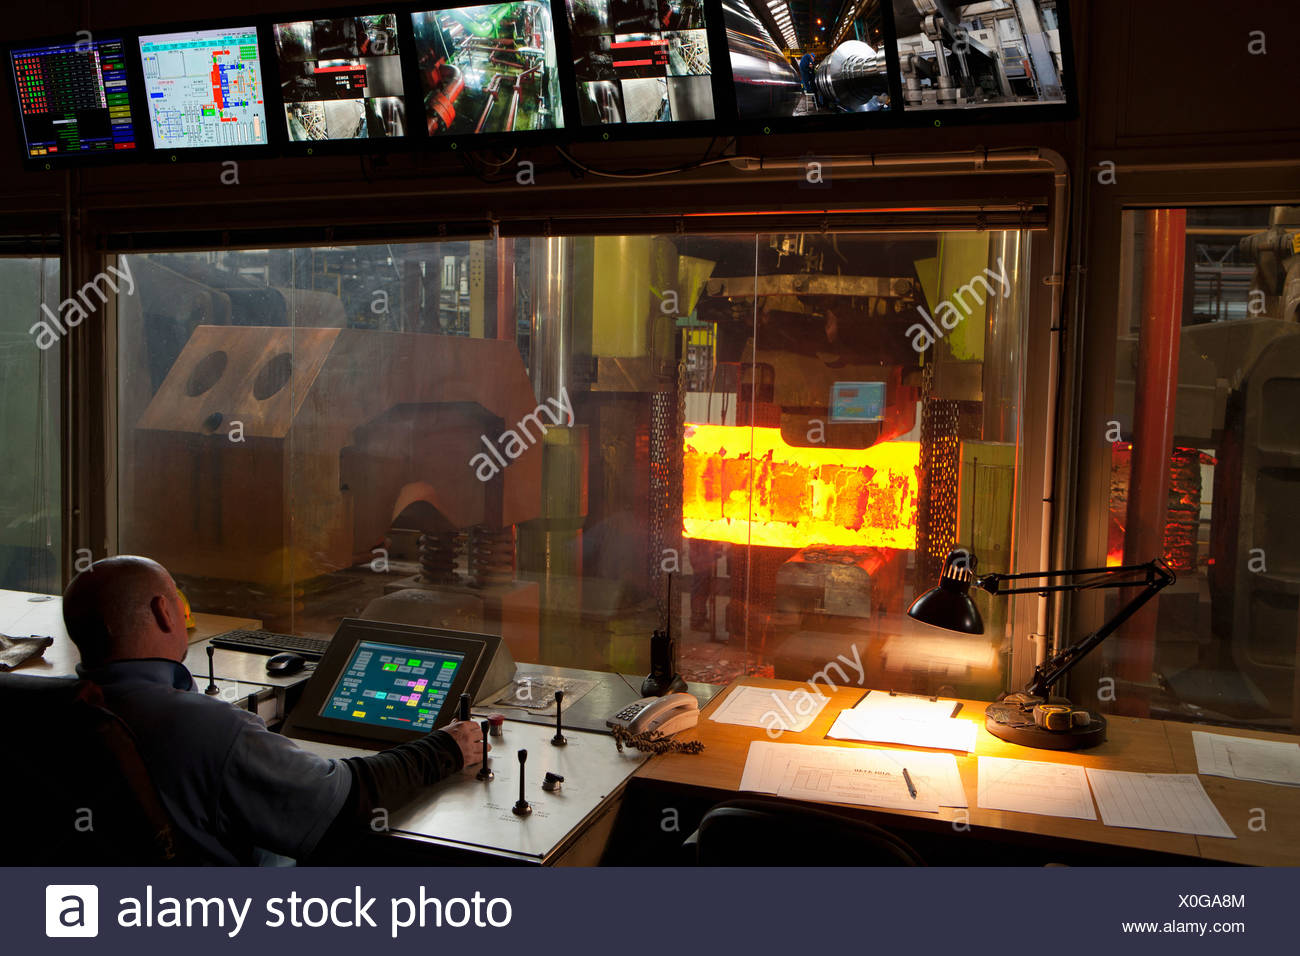 Man working in steelworks control room - Stock Image